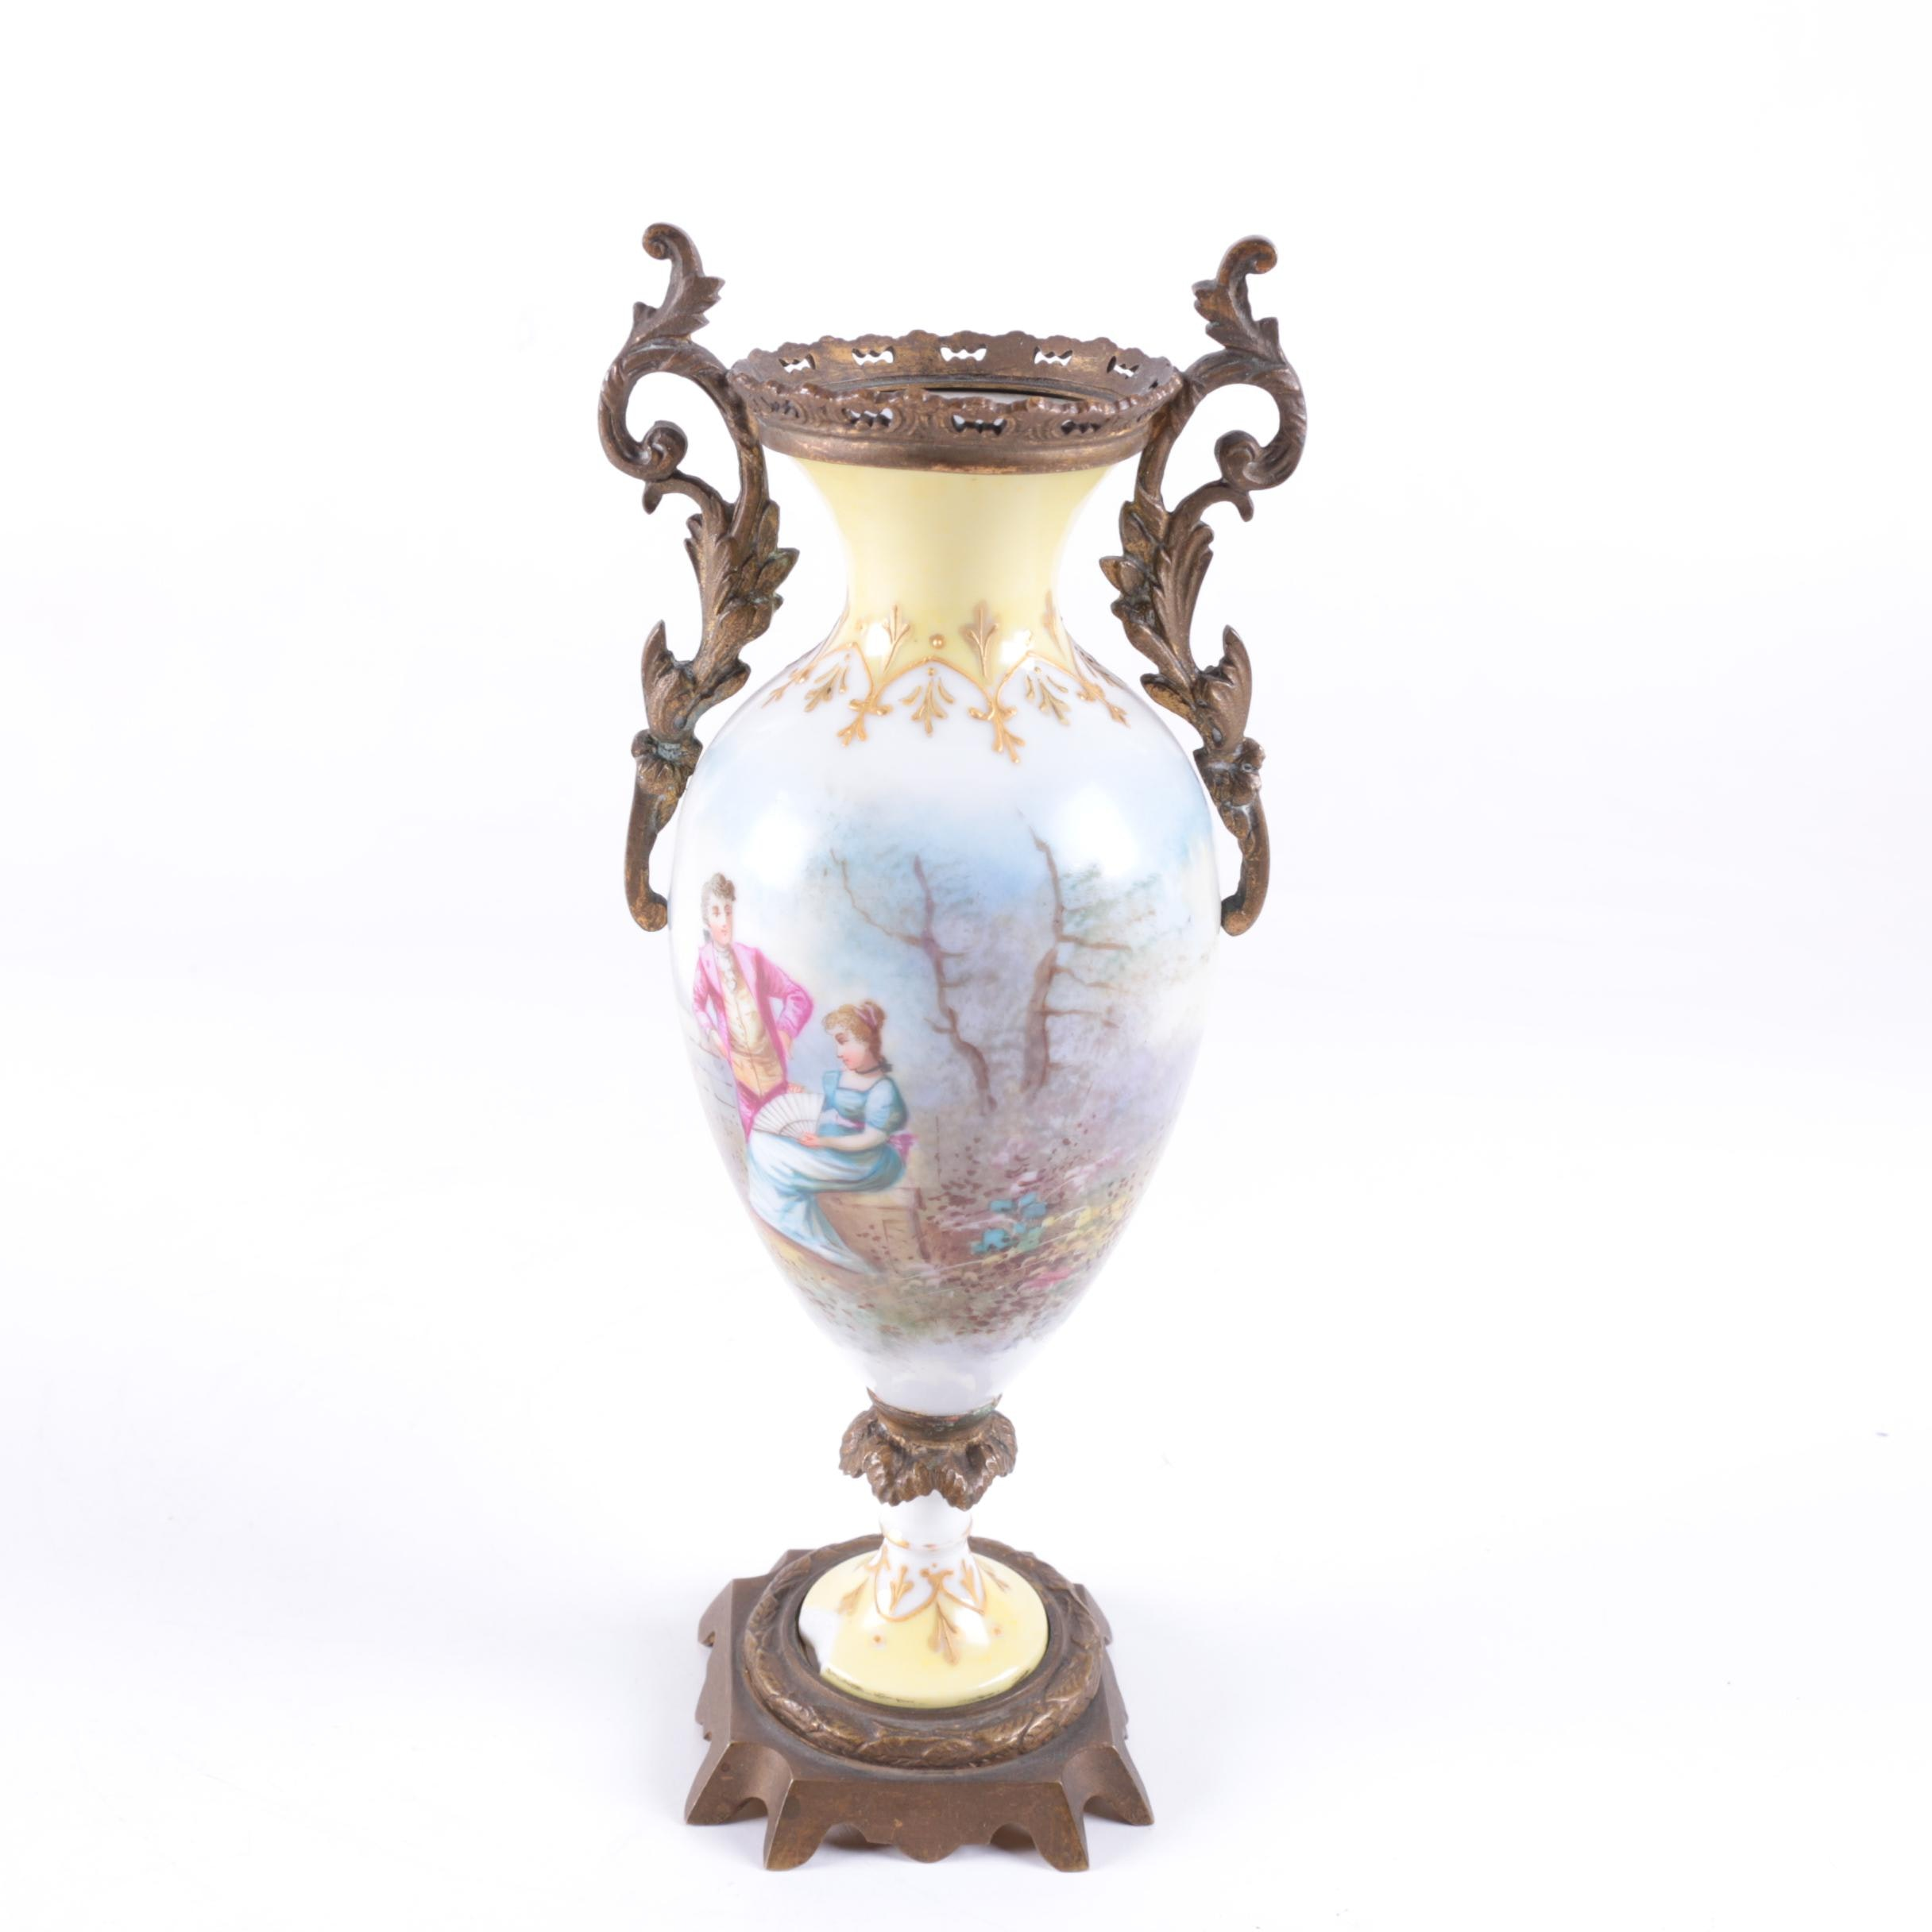 Antique Hand-Painted Sevres Style Porcelain Vase with Ormolu